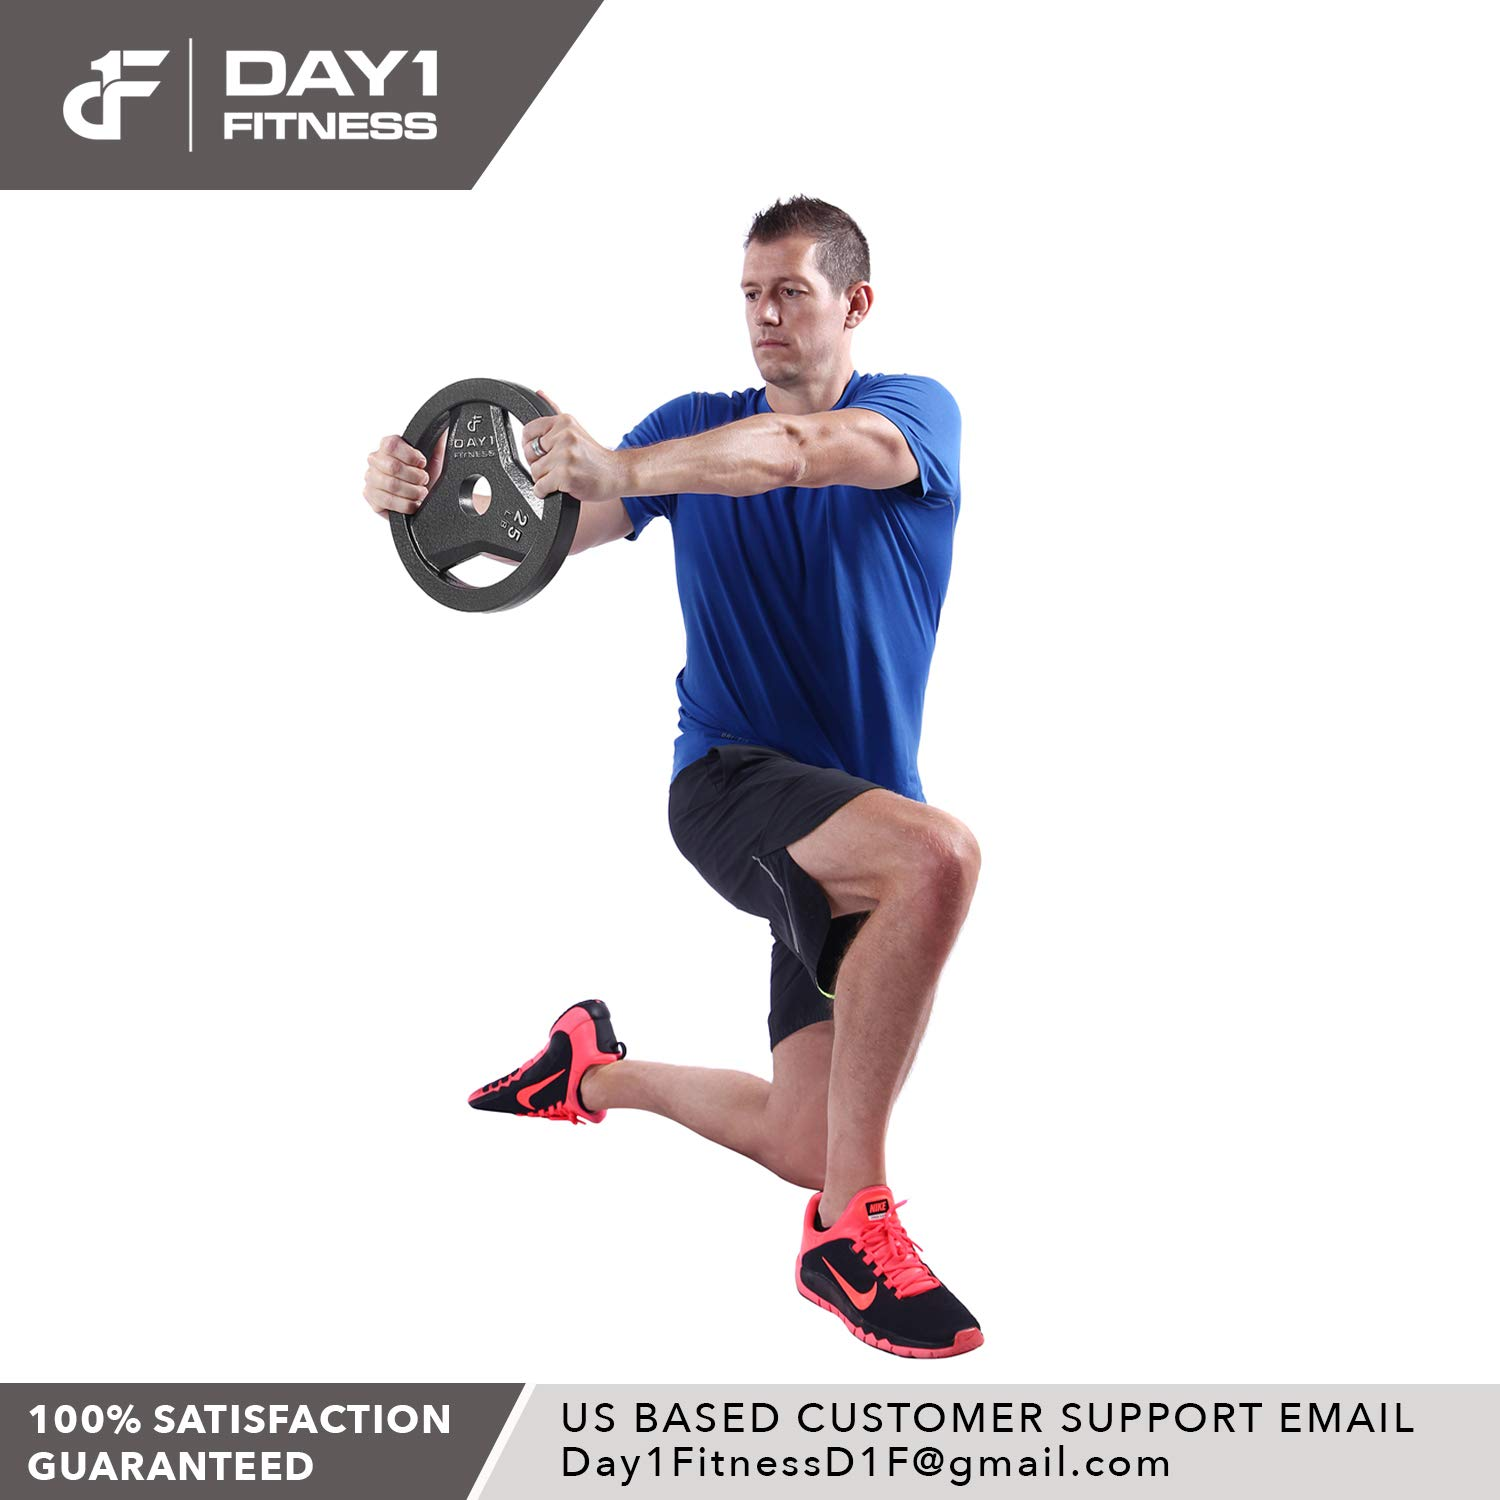 """Day 1 Fitness Cast Iron Olympic 2-Inch Grip Plate by D1F for Barbell, 6 Weights Available (2.5 to 45lbs) Plates for Weightlifting - 2"""" Weight Plate for Bodybuilding - Singles or Pairs"""